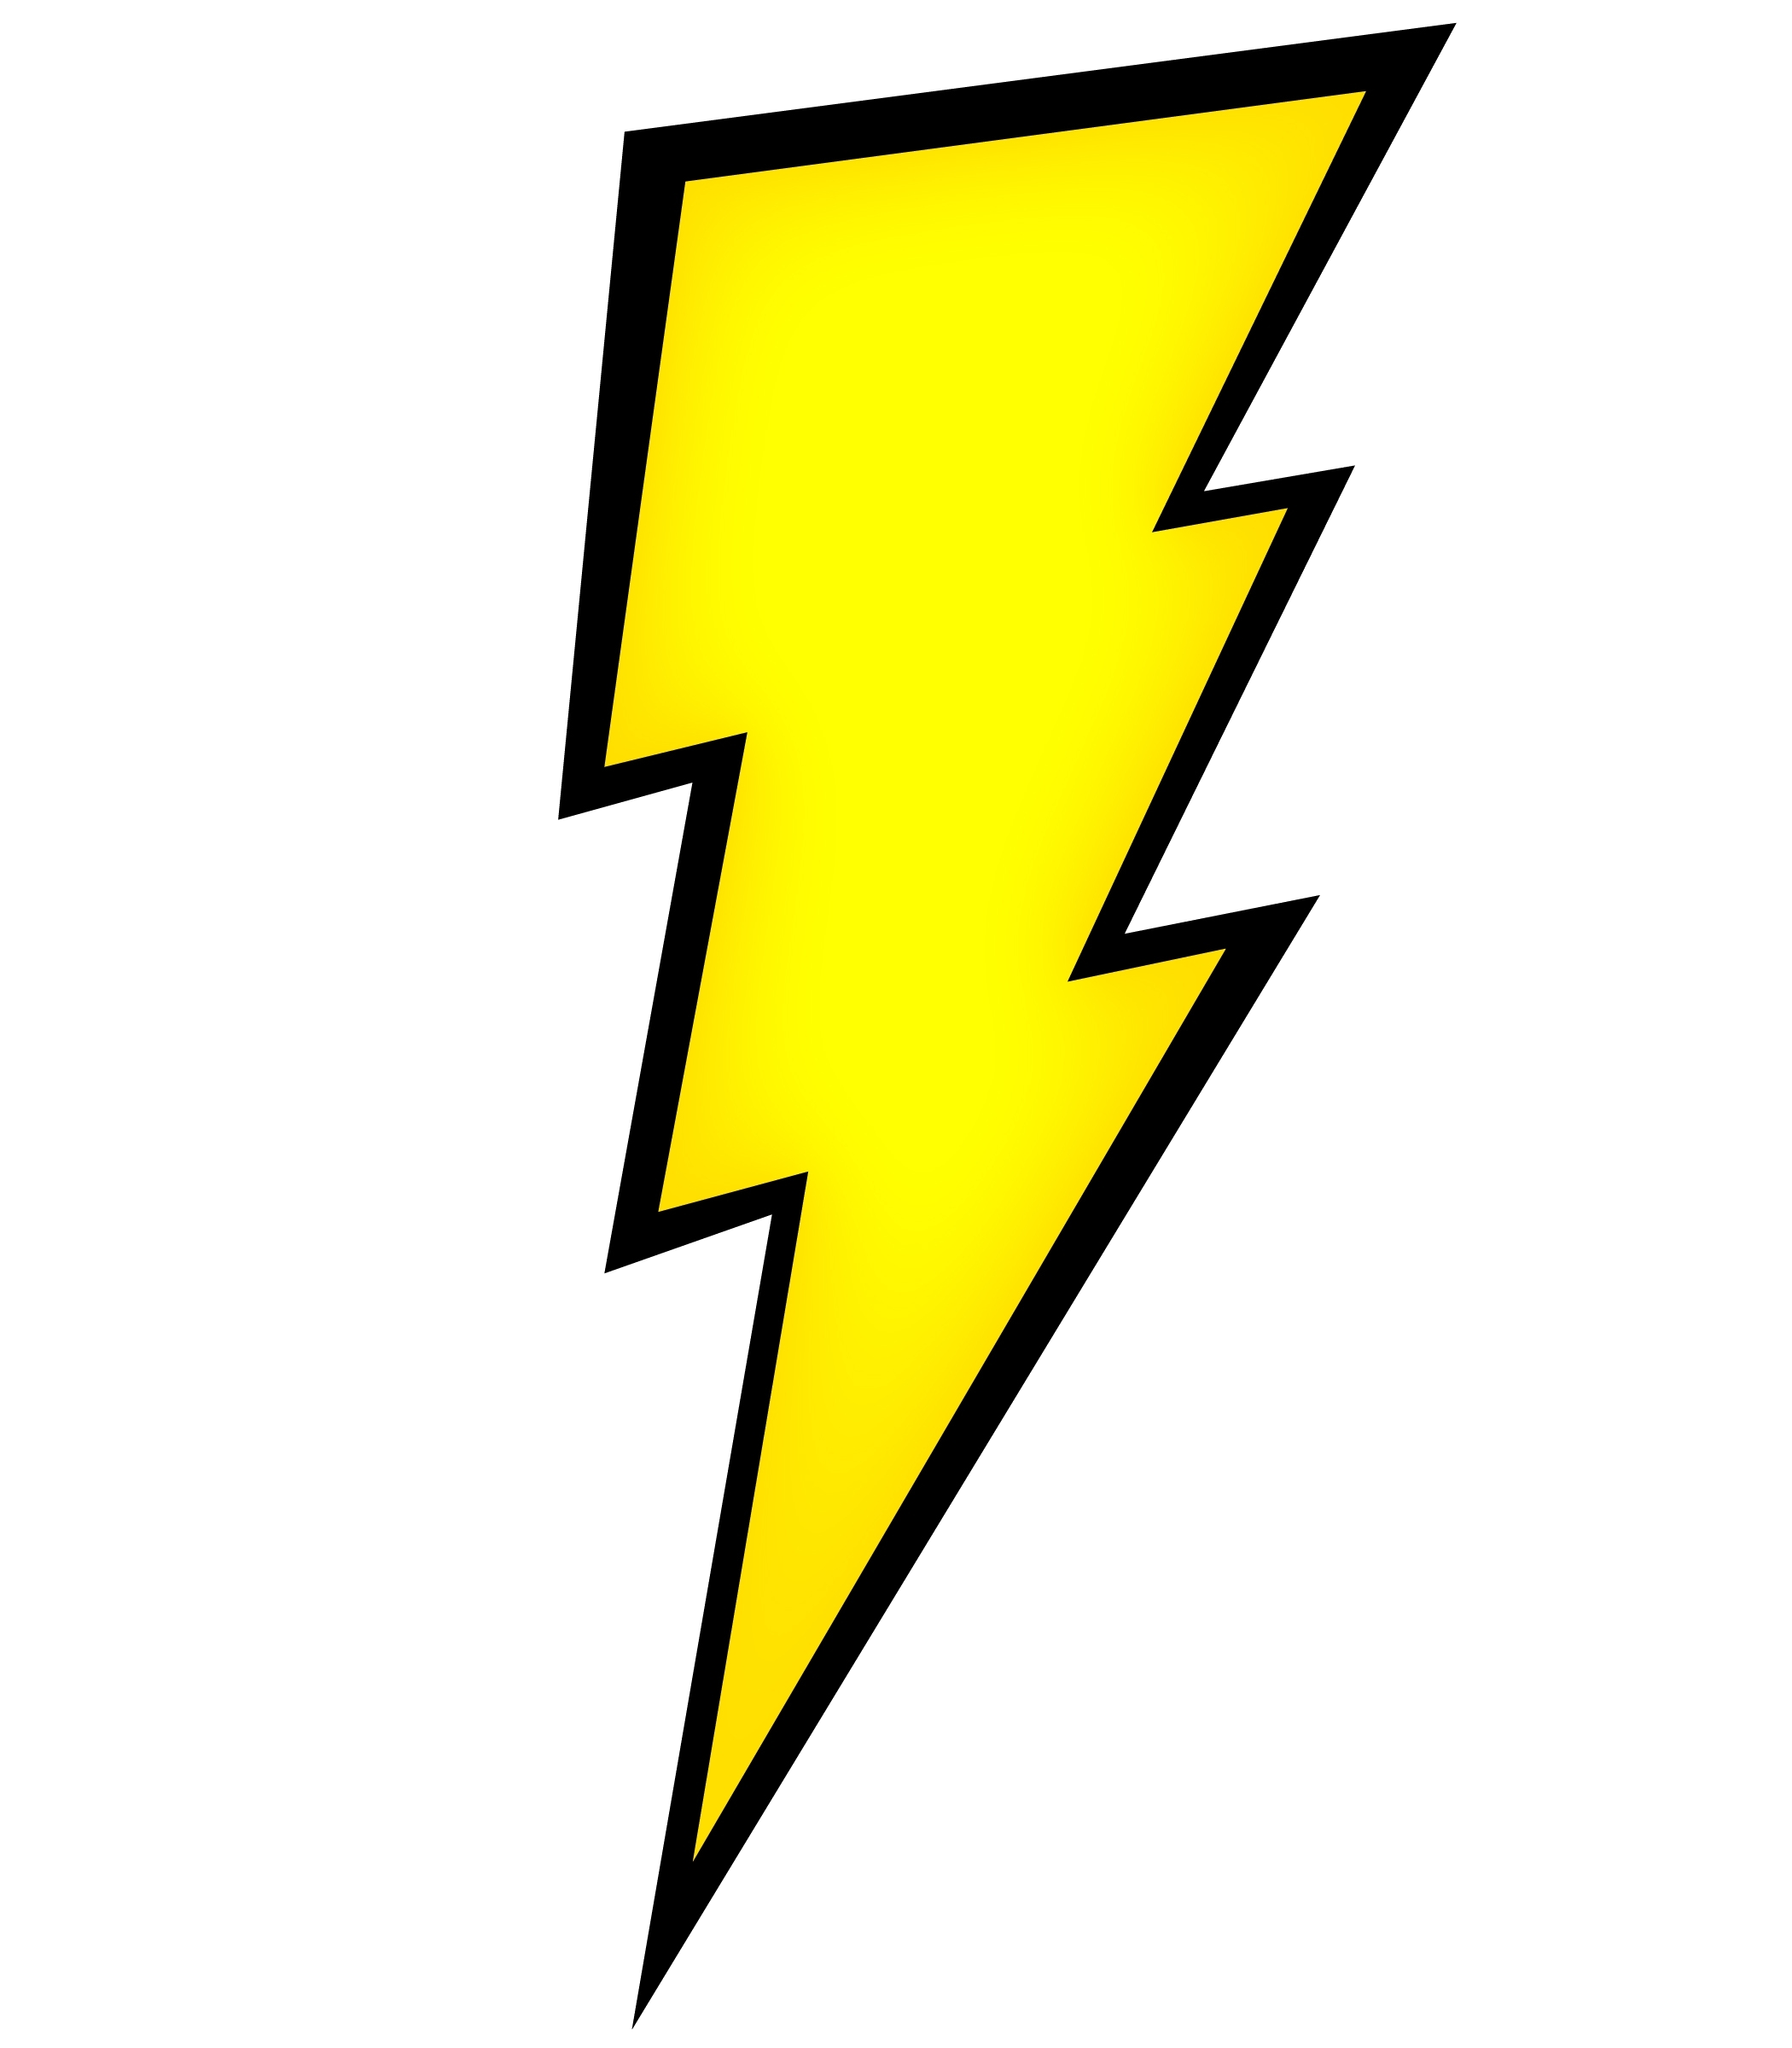 Electricity clipart #7, Download drawings